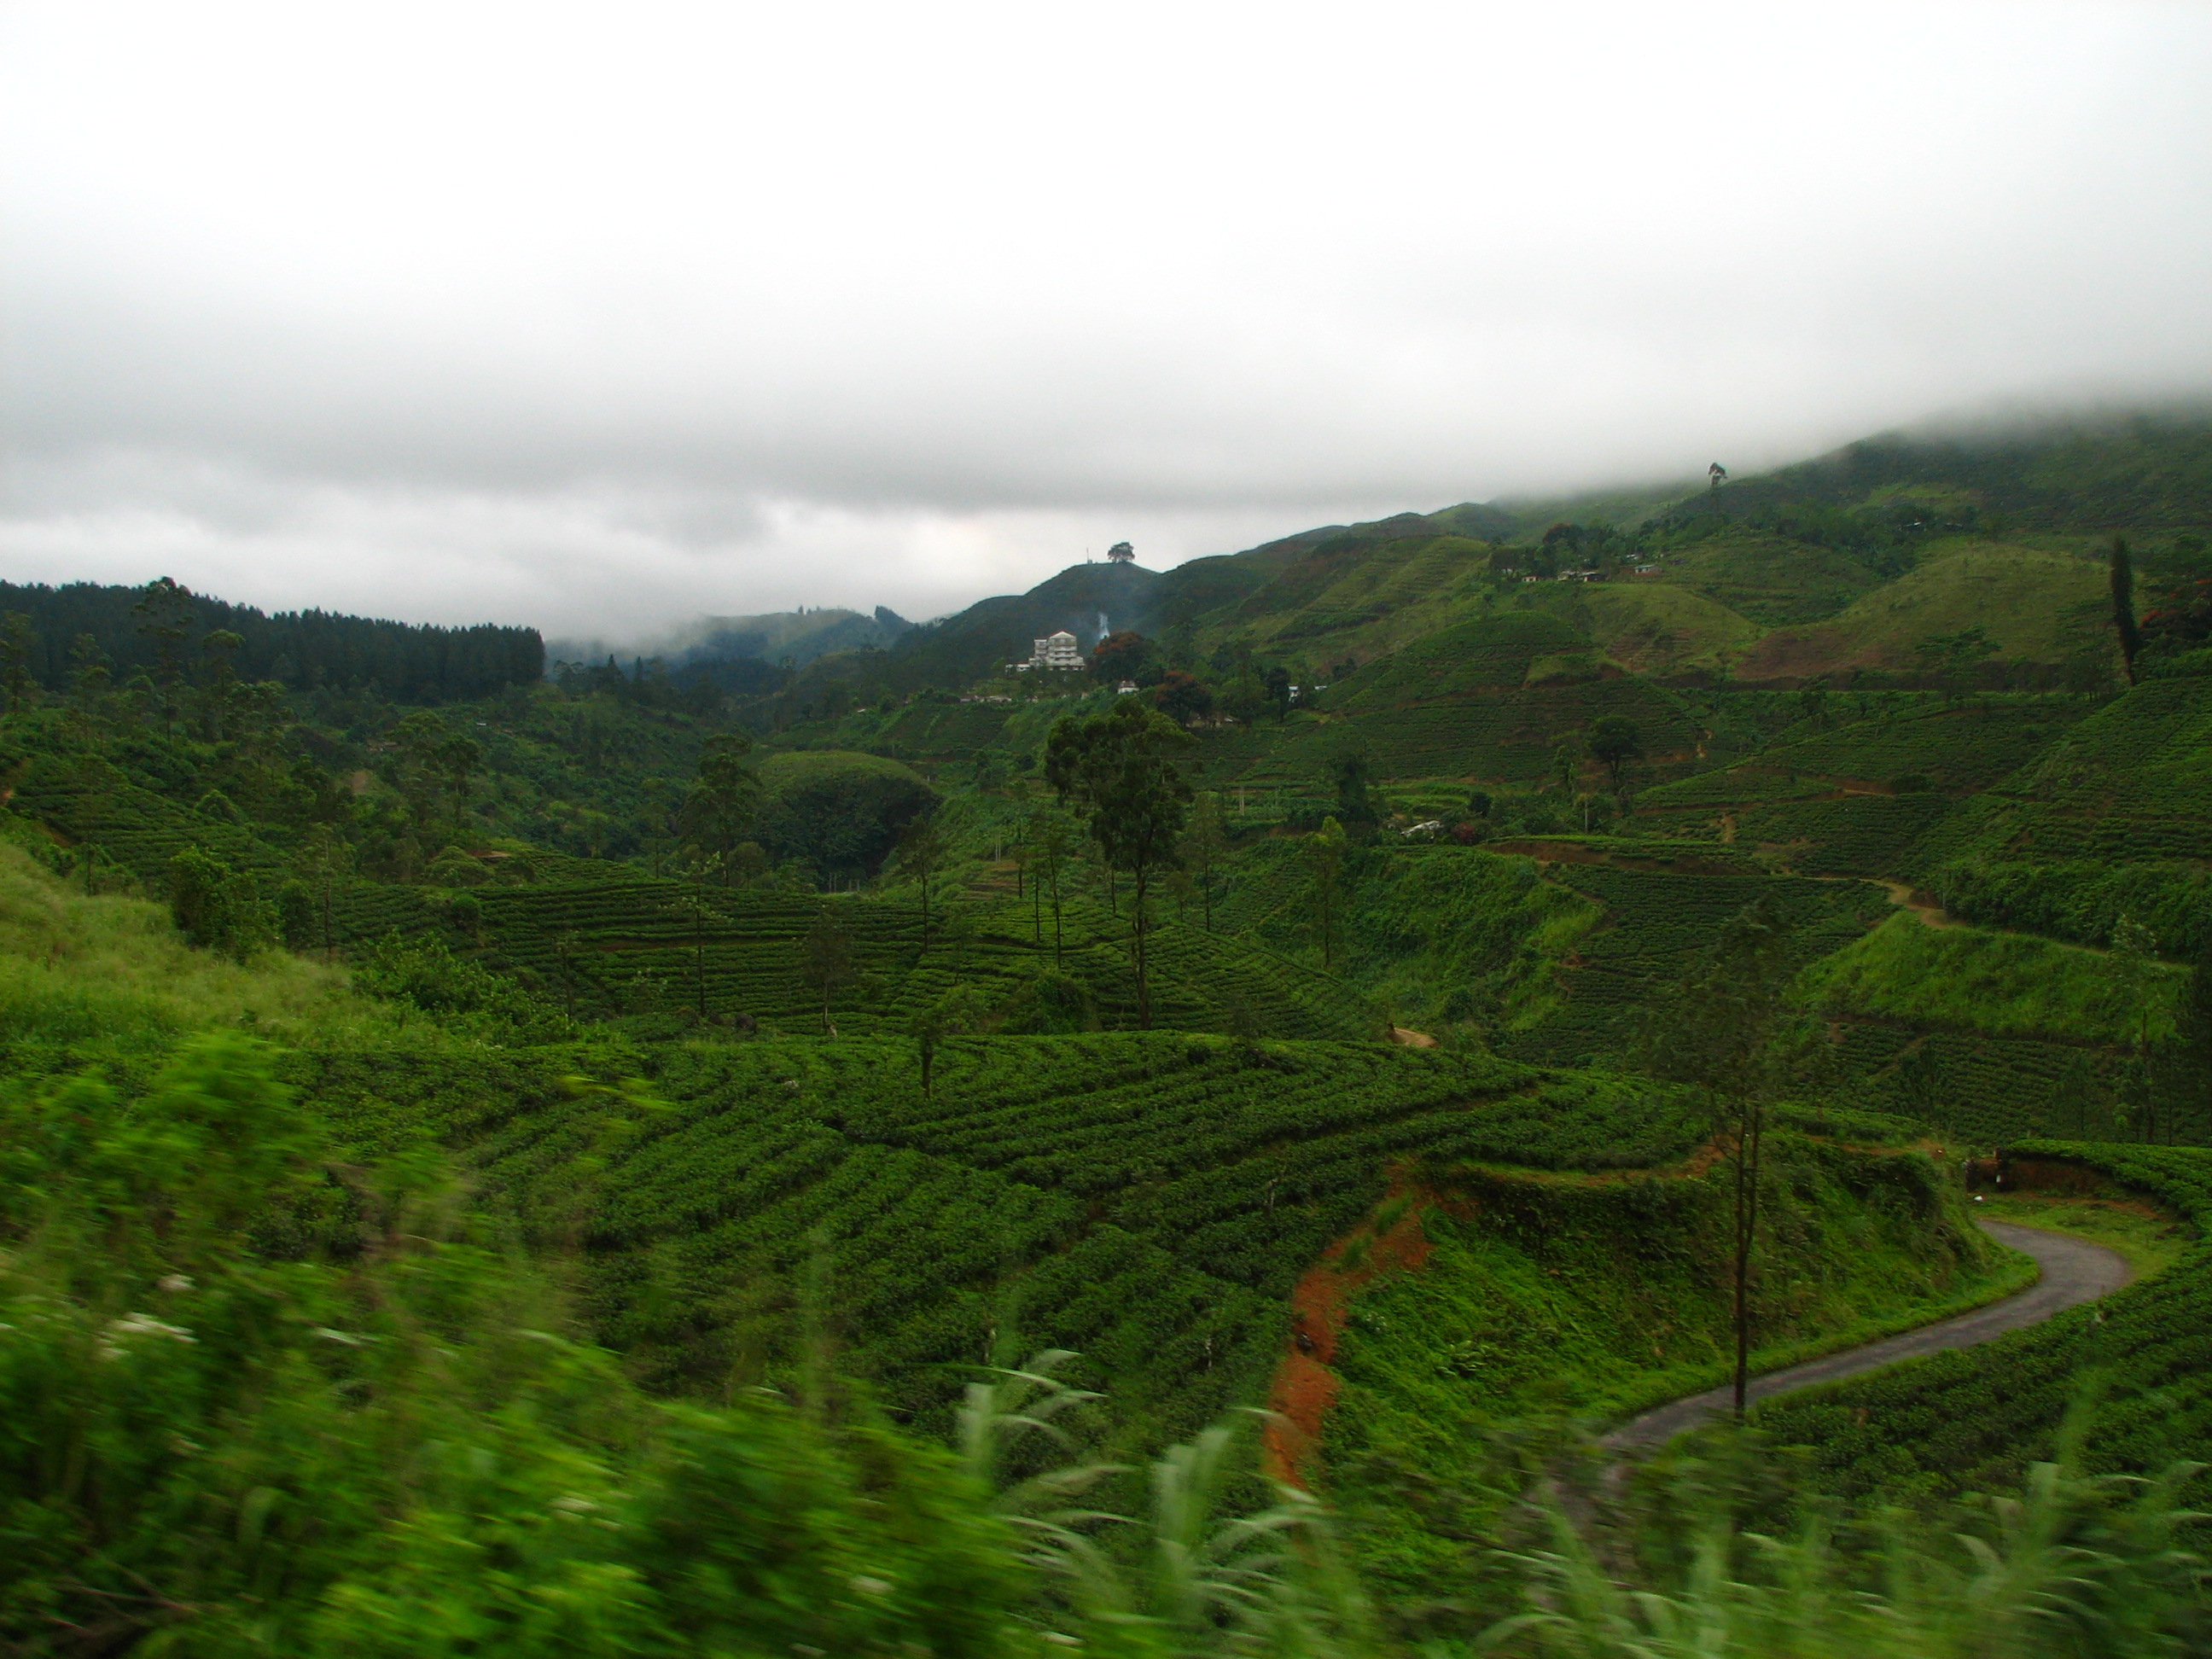 The Position Of The Tea Area And The Tea Supplier